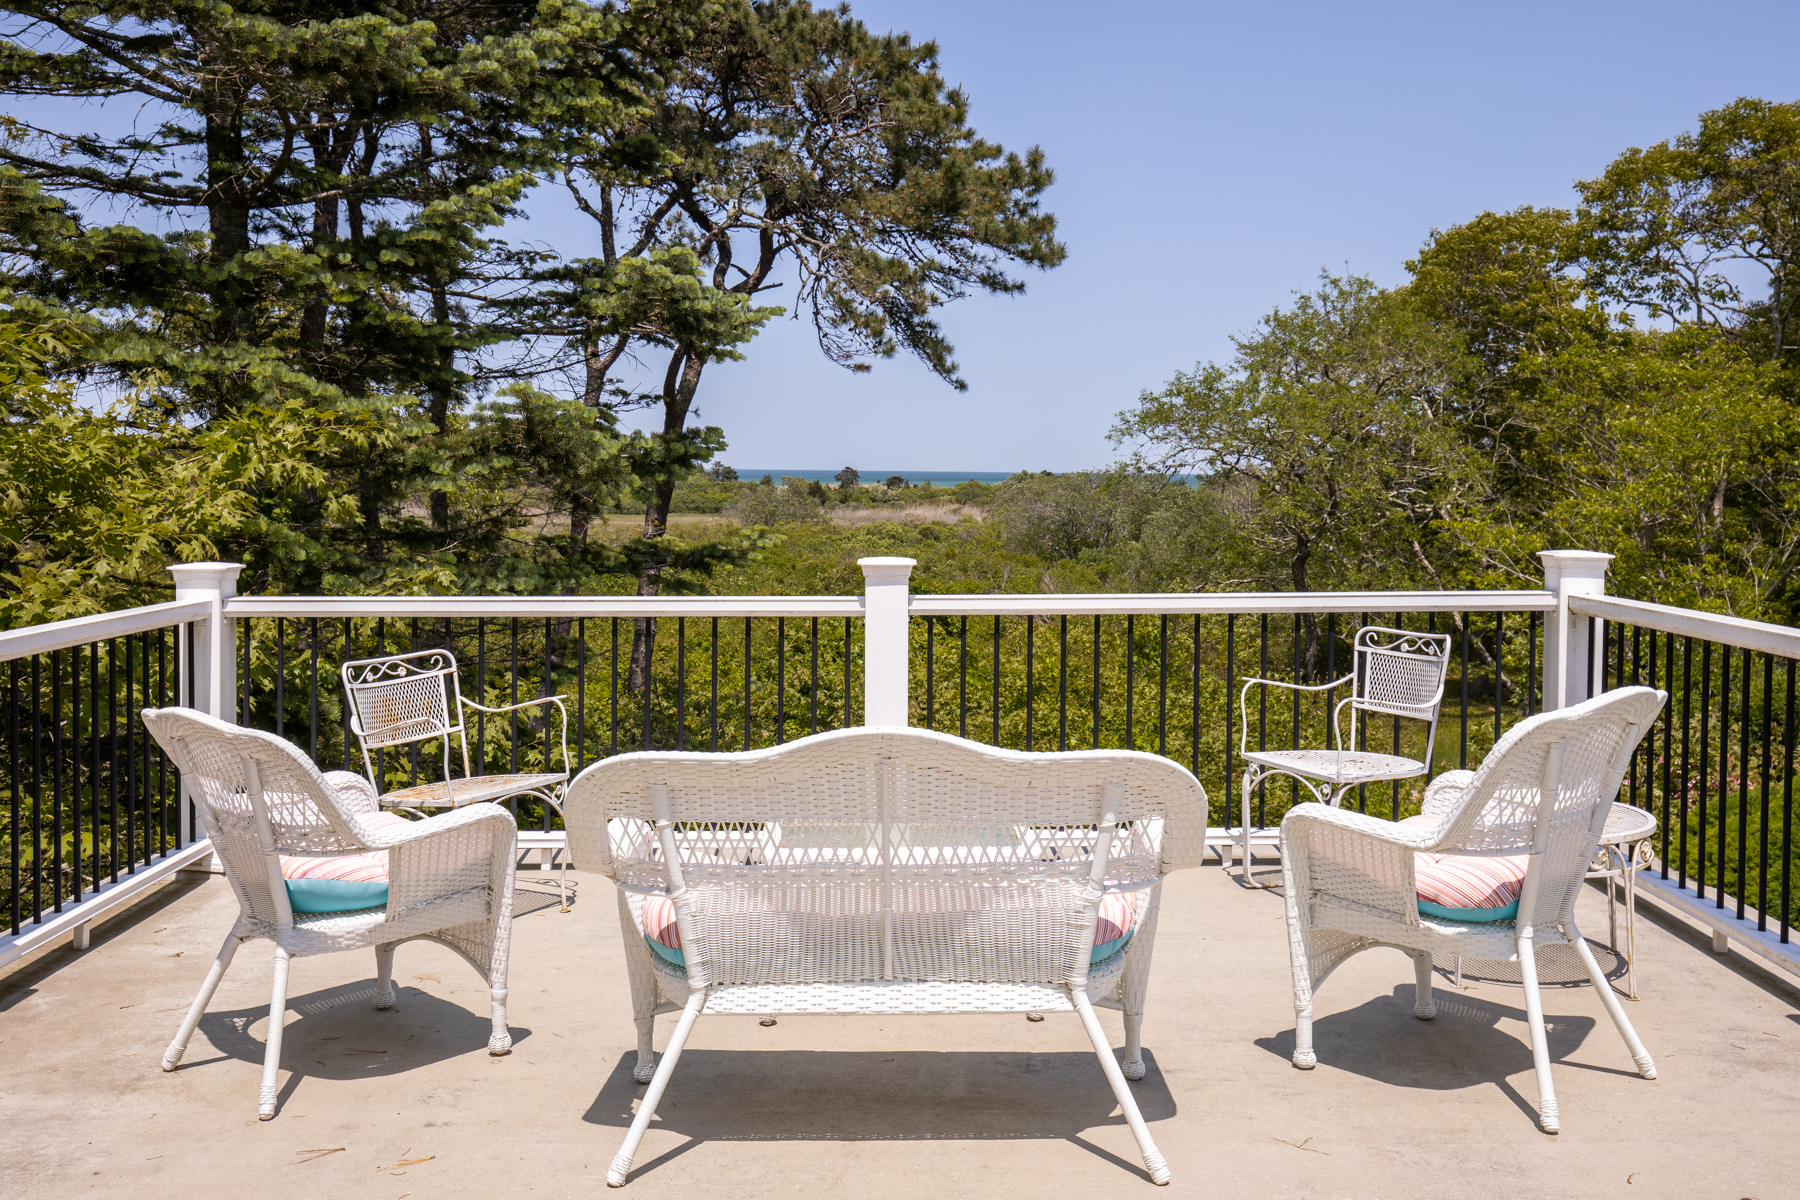 Land for Sale at Land oportunity in Edgartown 9 Lenssen Way Edgartown, Massachusetts 02539 United States